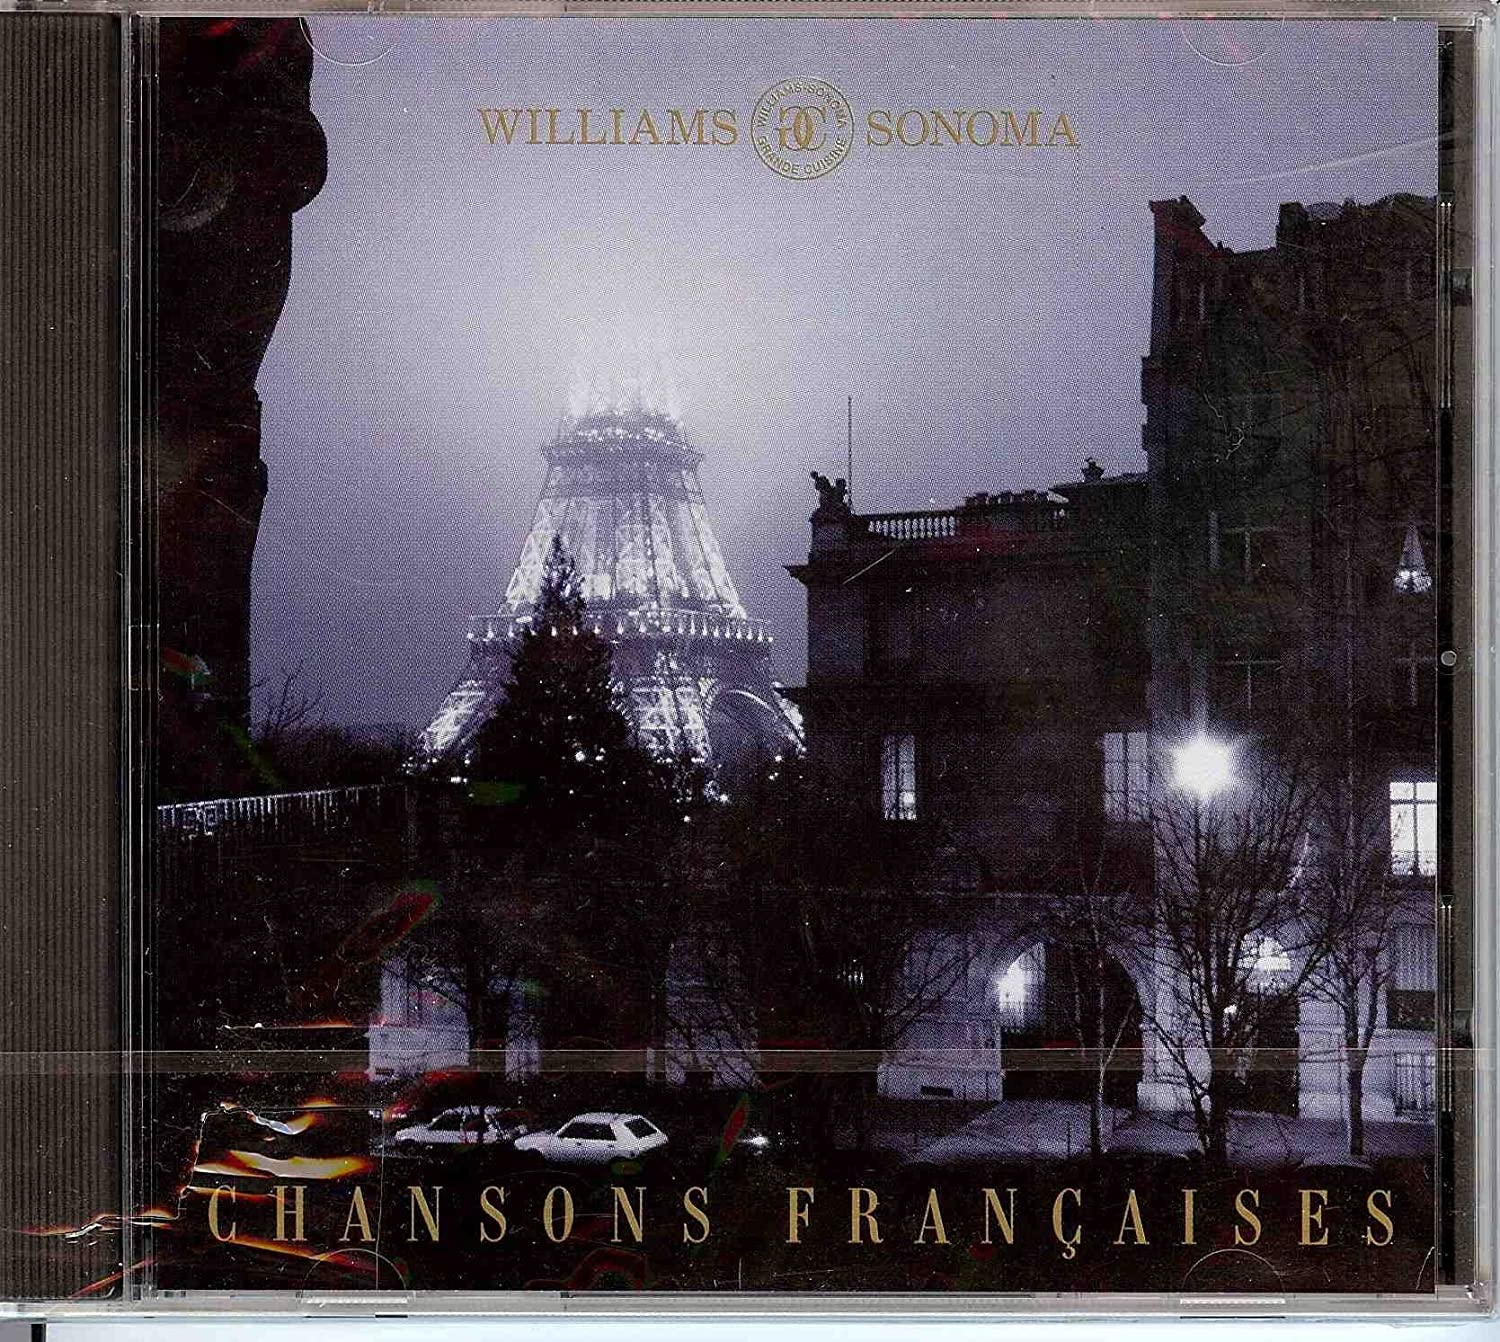 Willams-Sonoma: Chansons Francaises sold out depot